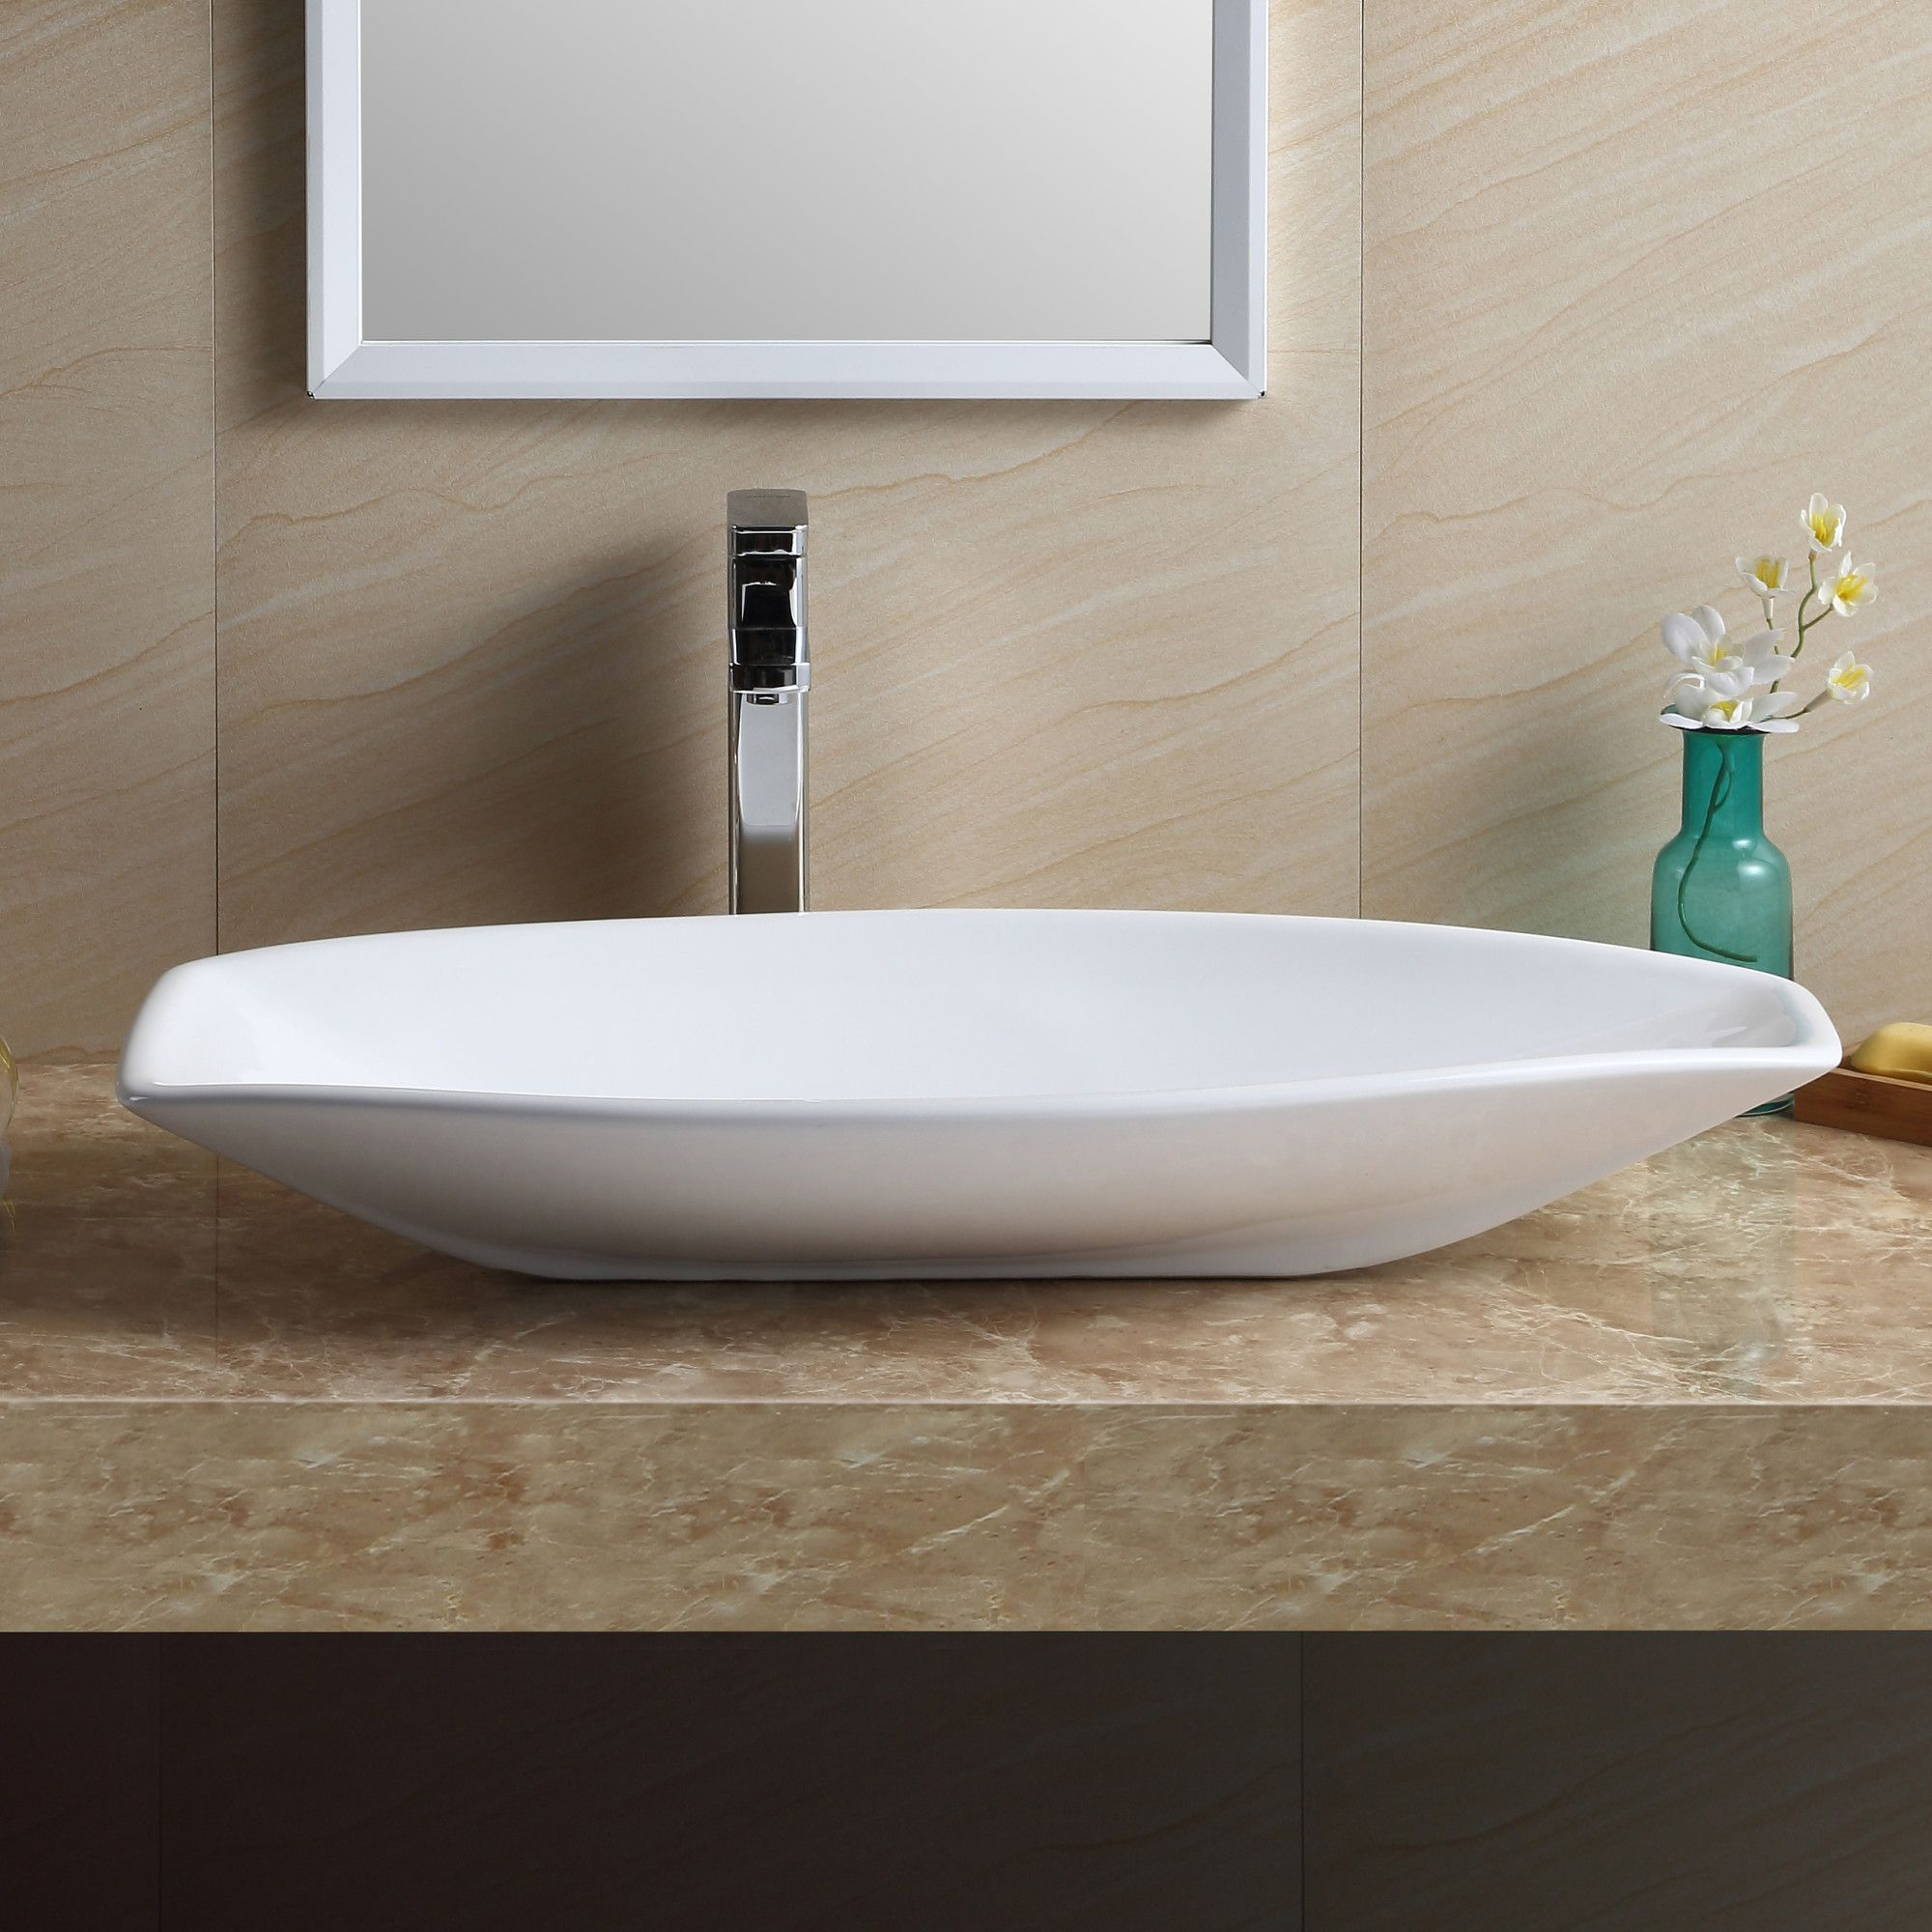 Modern Specialty Bathroom Sink Bathroom Sink Sink Modern Bathroom Sink